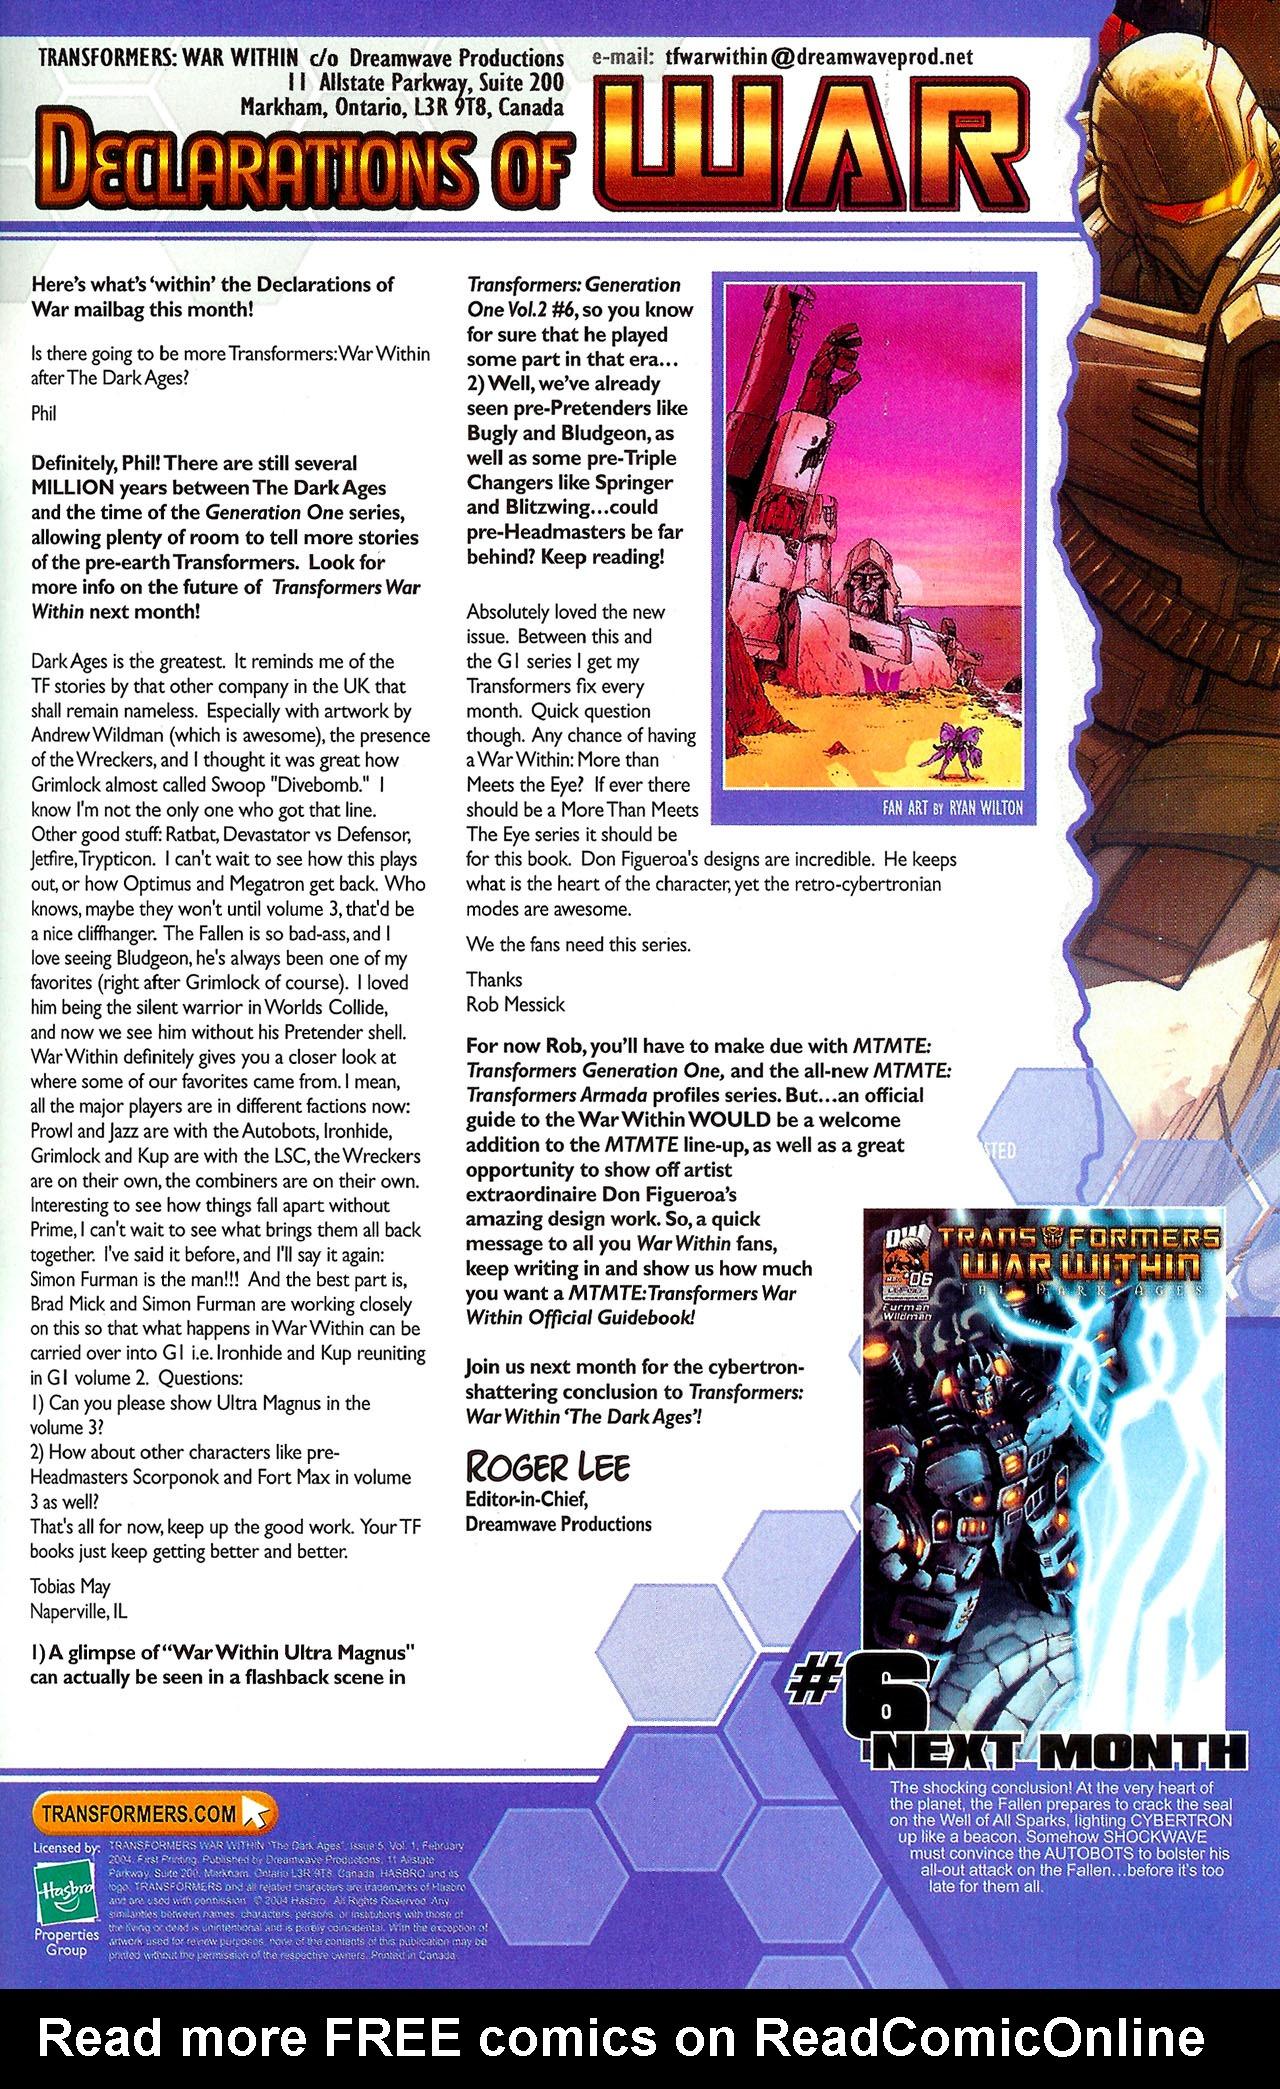 """Read online Transformers War Within: """"The Dark Ages"""" comic -  Issue #5 - 23"""